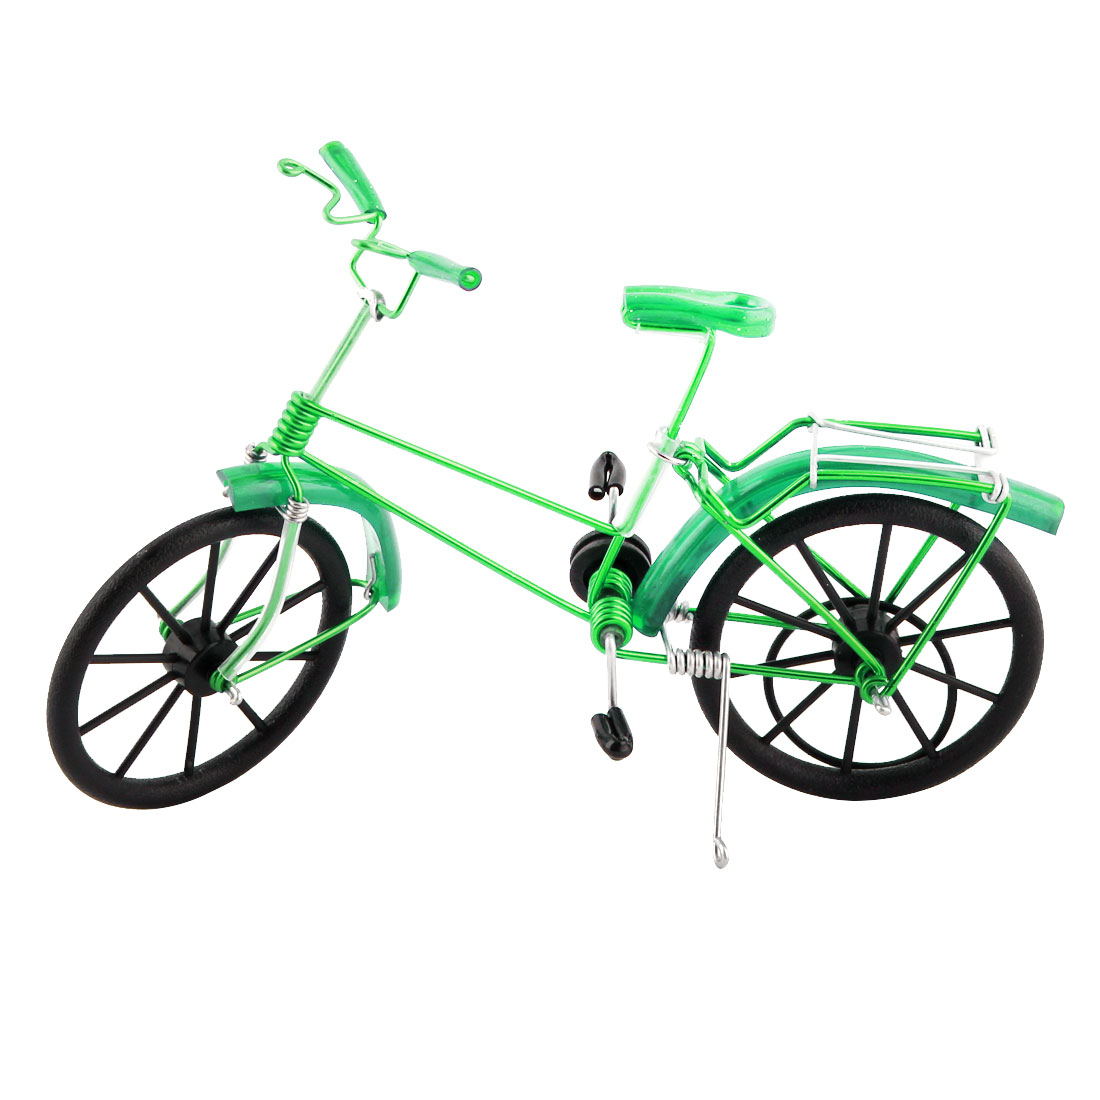 Handmade Craft Table Ornament Collection Figurine Toy Bicycle Model Decor Green